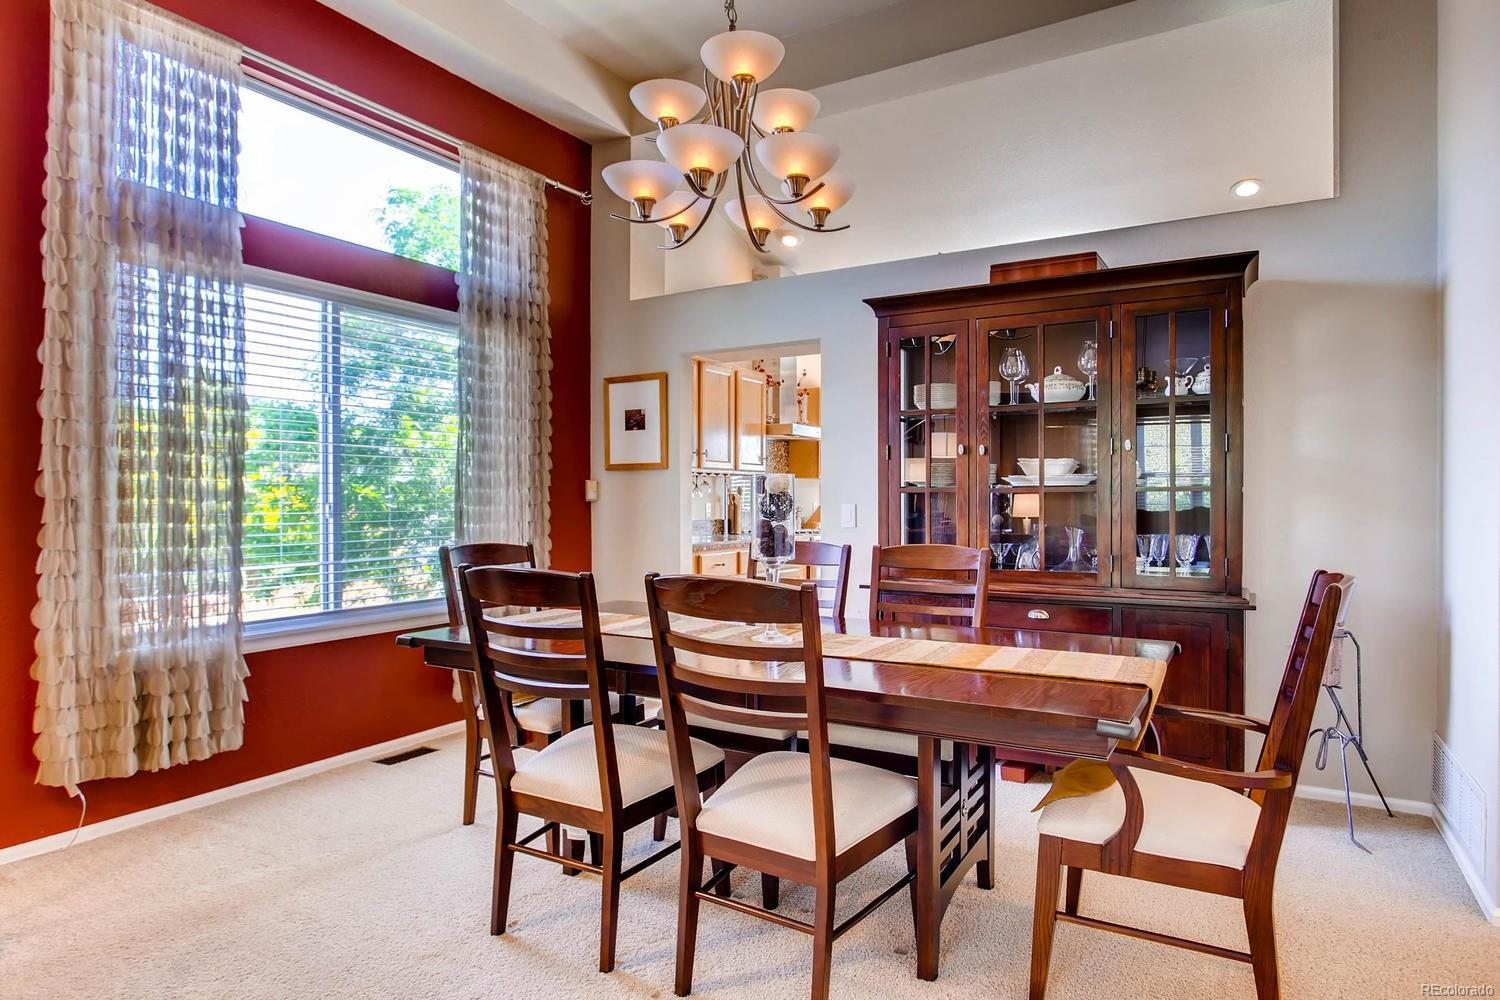 Dining room adjacent to kitchen and formal living room